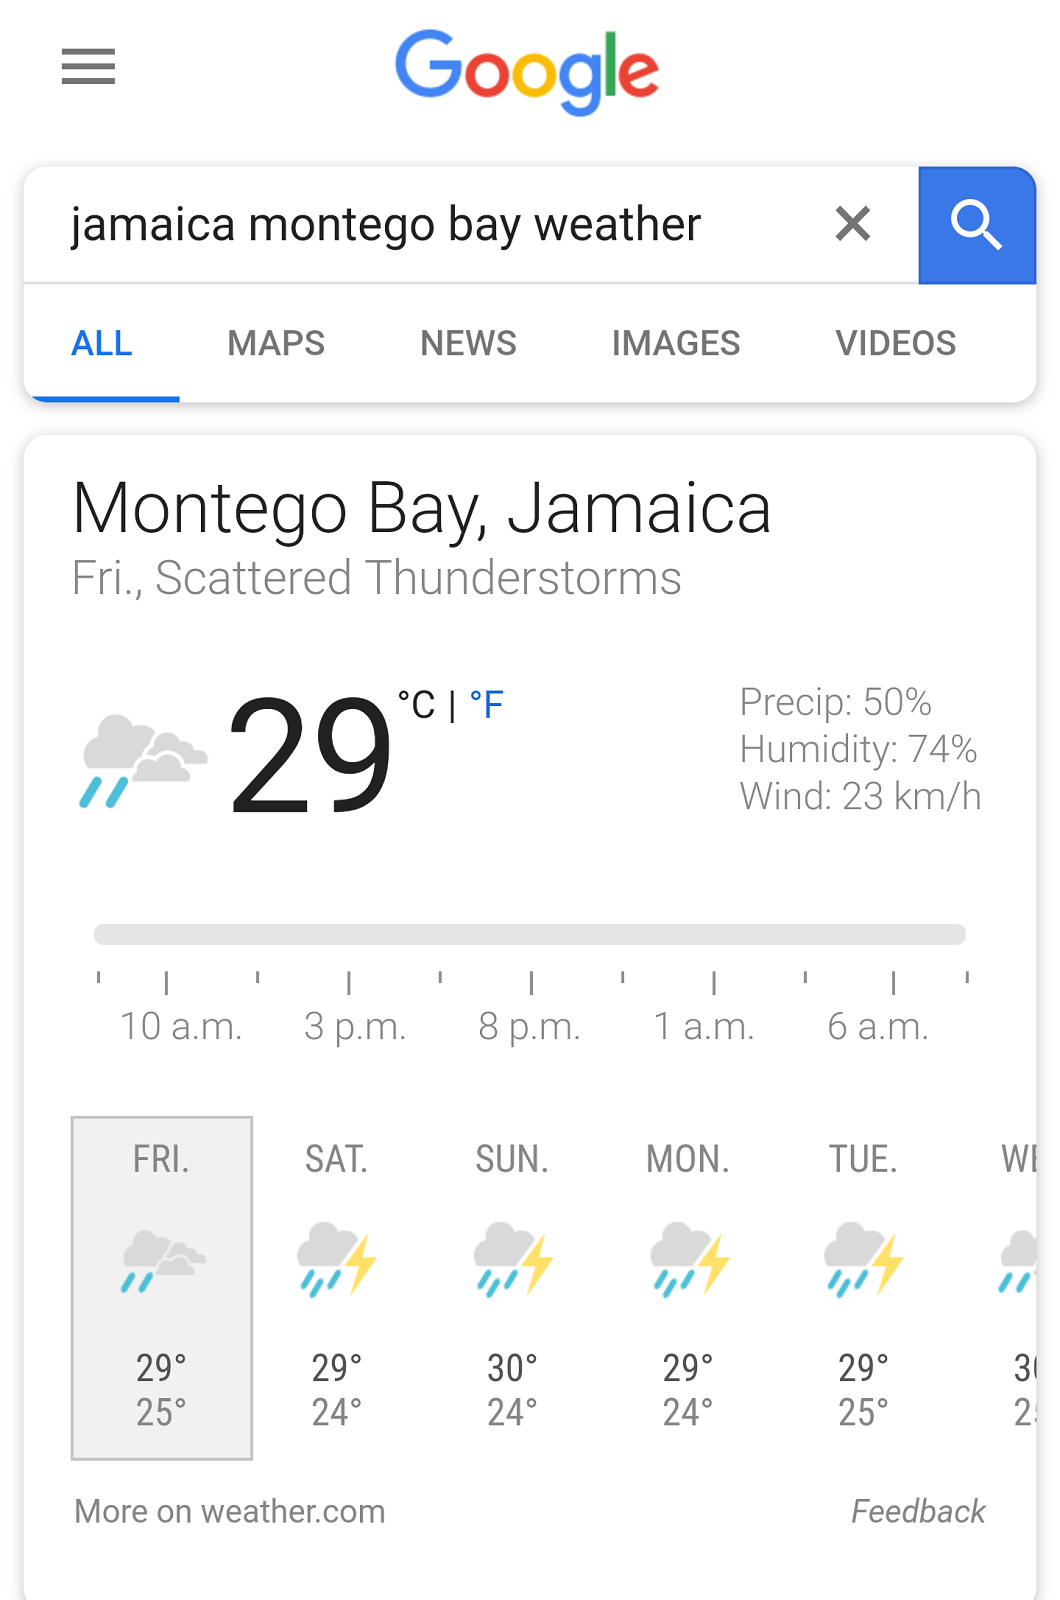 Jamaica Montego Bay weather forecast